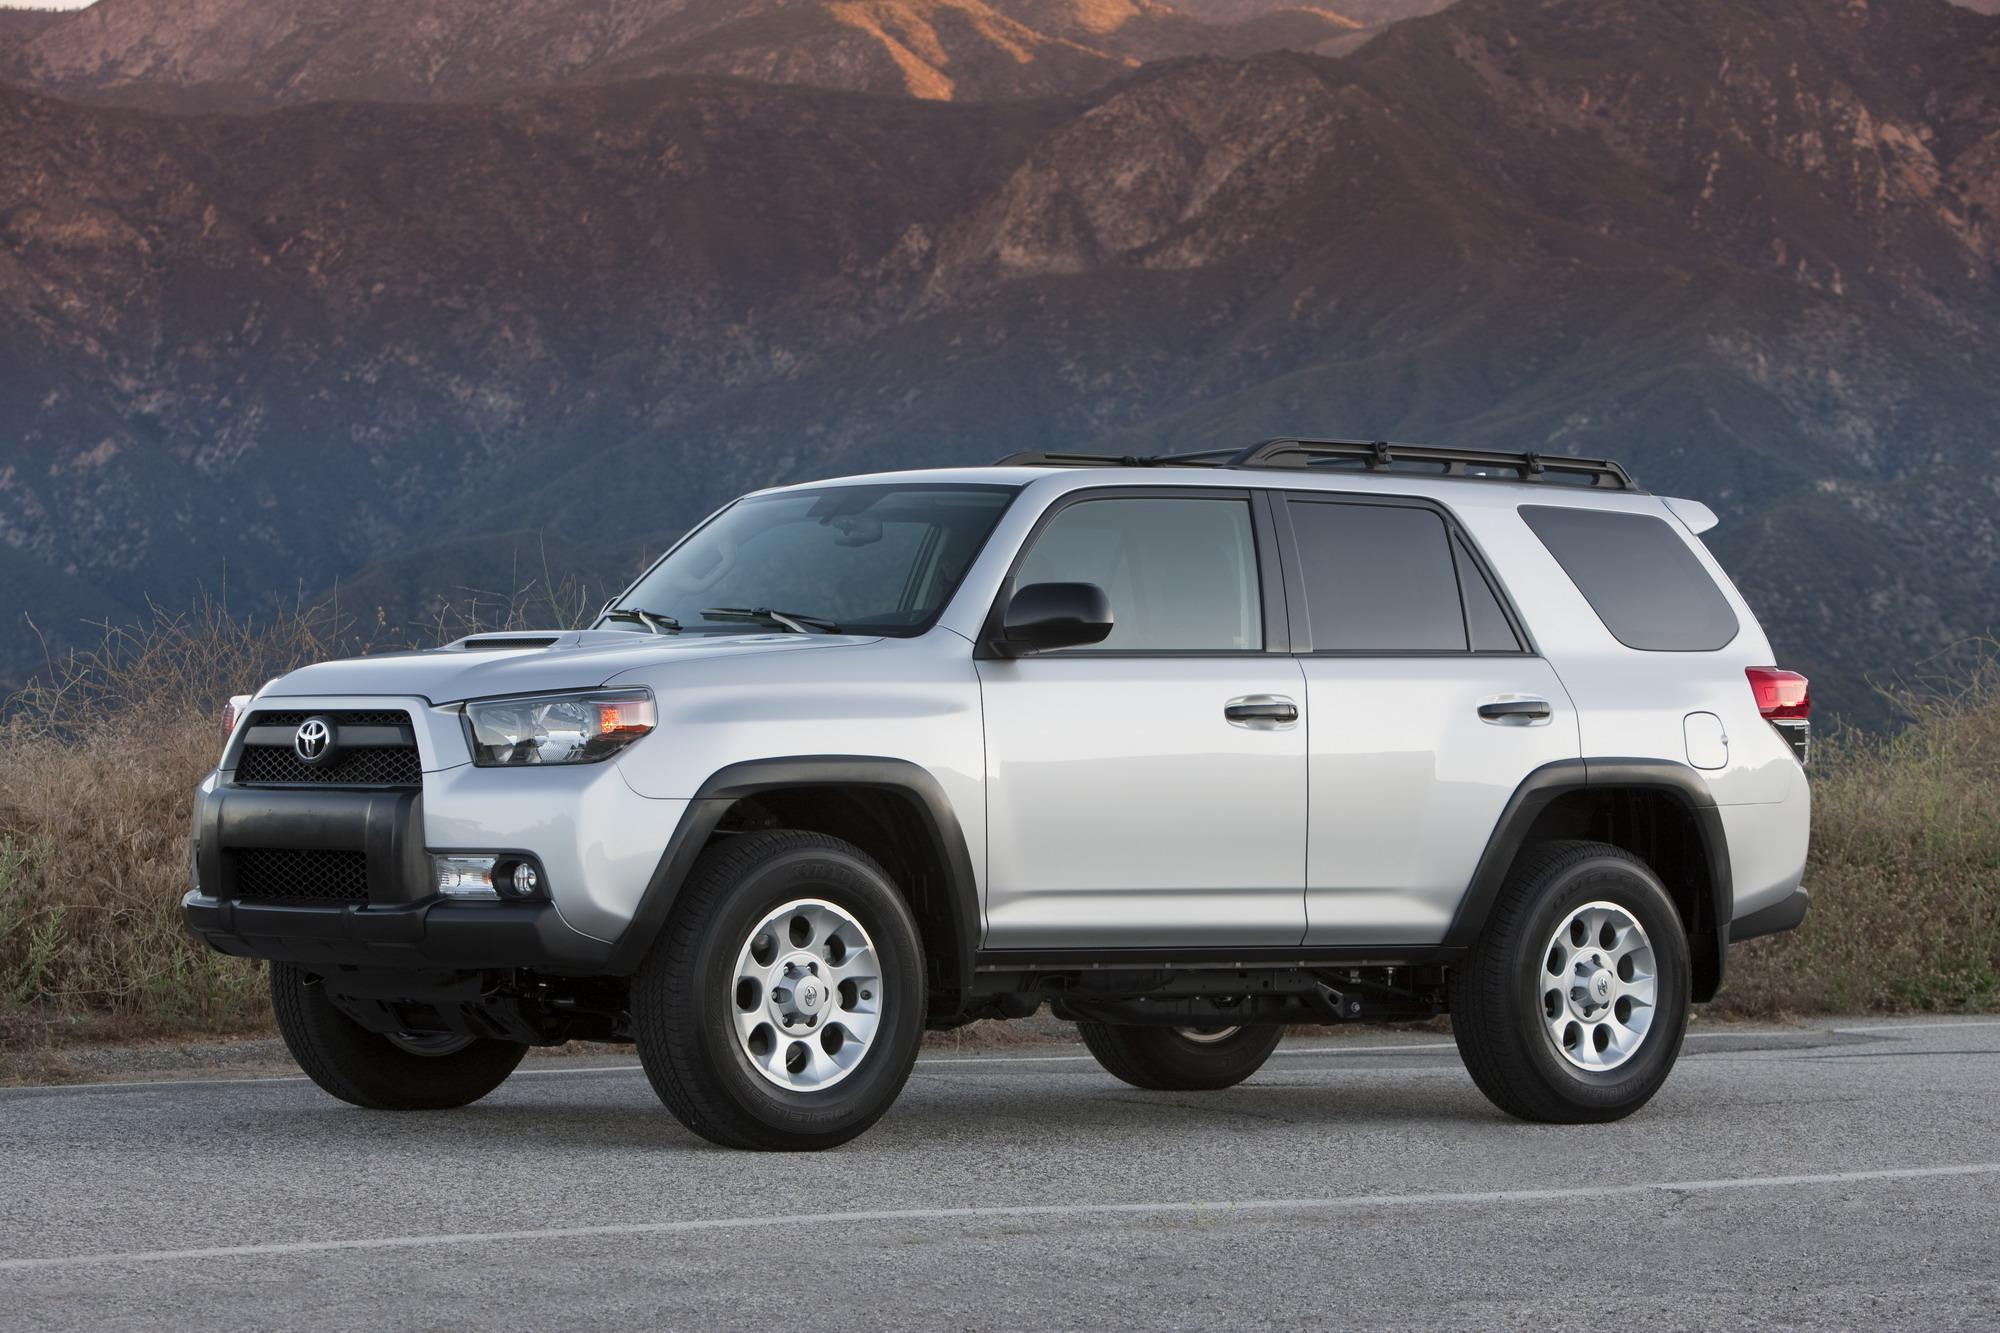 2010 toyota 4runner review gallery 322828 top speed. Black Bedroom Furniture Sets. Home Design Ideas